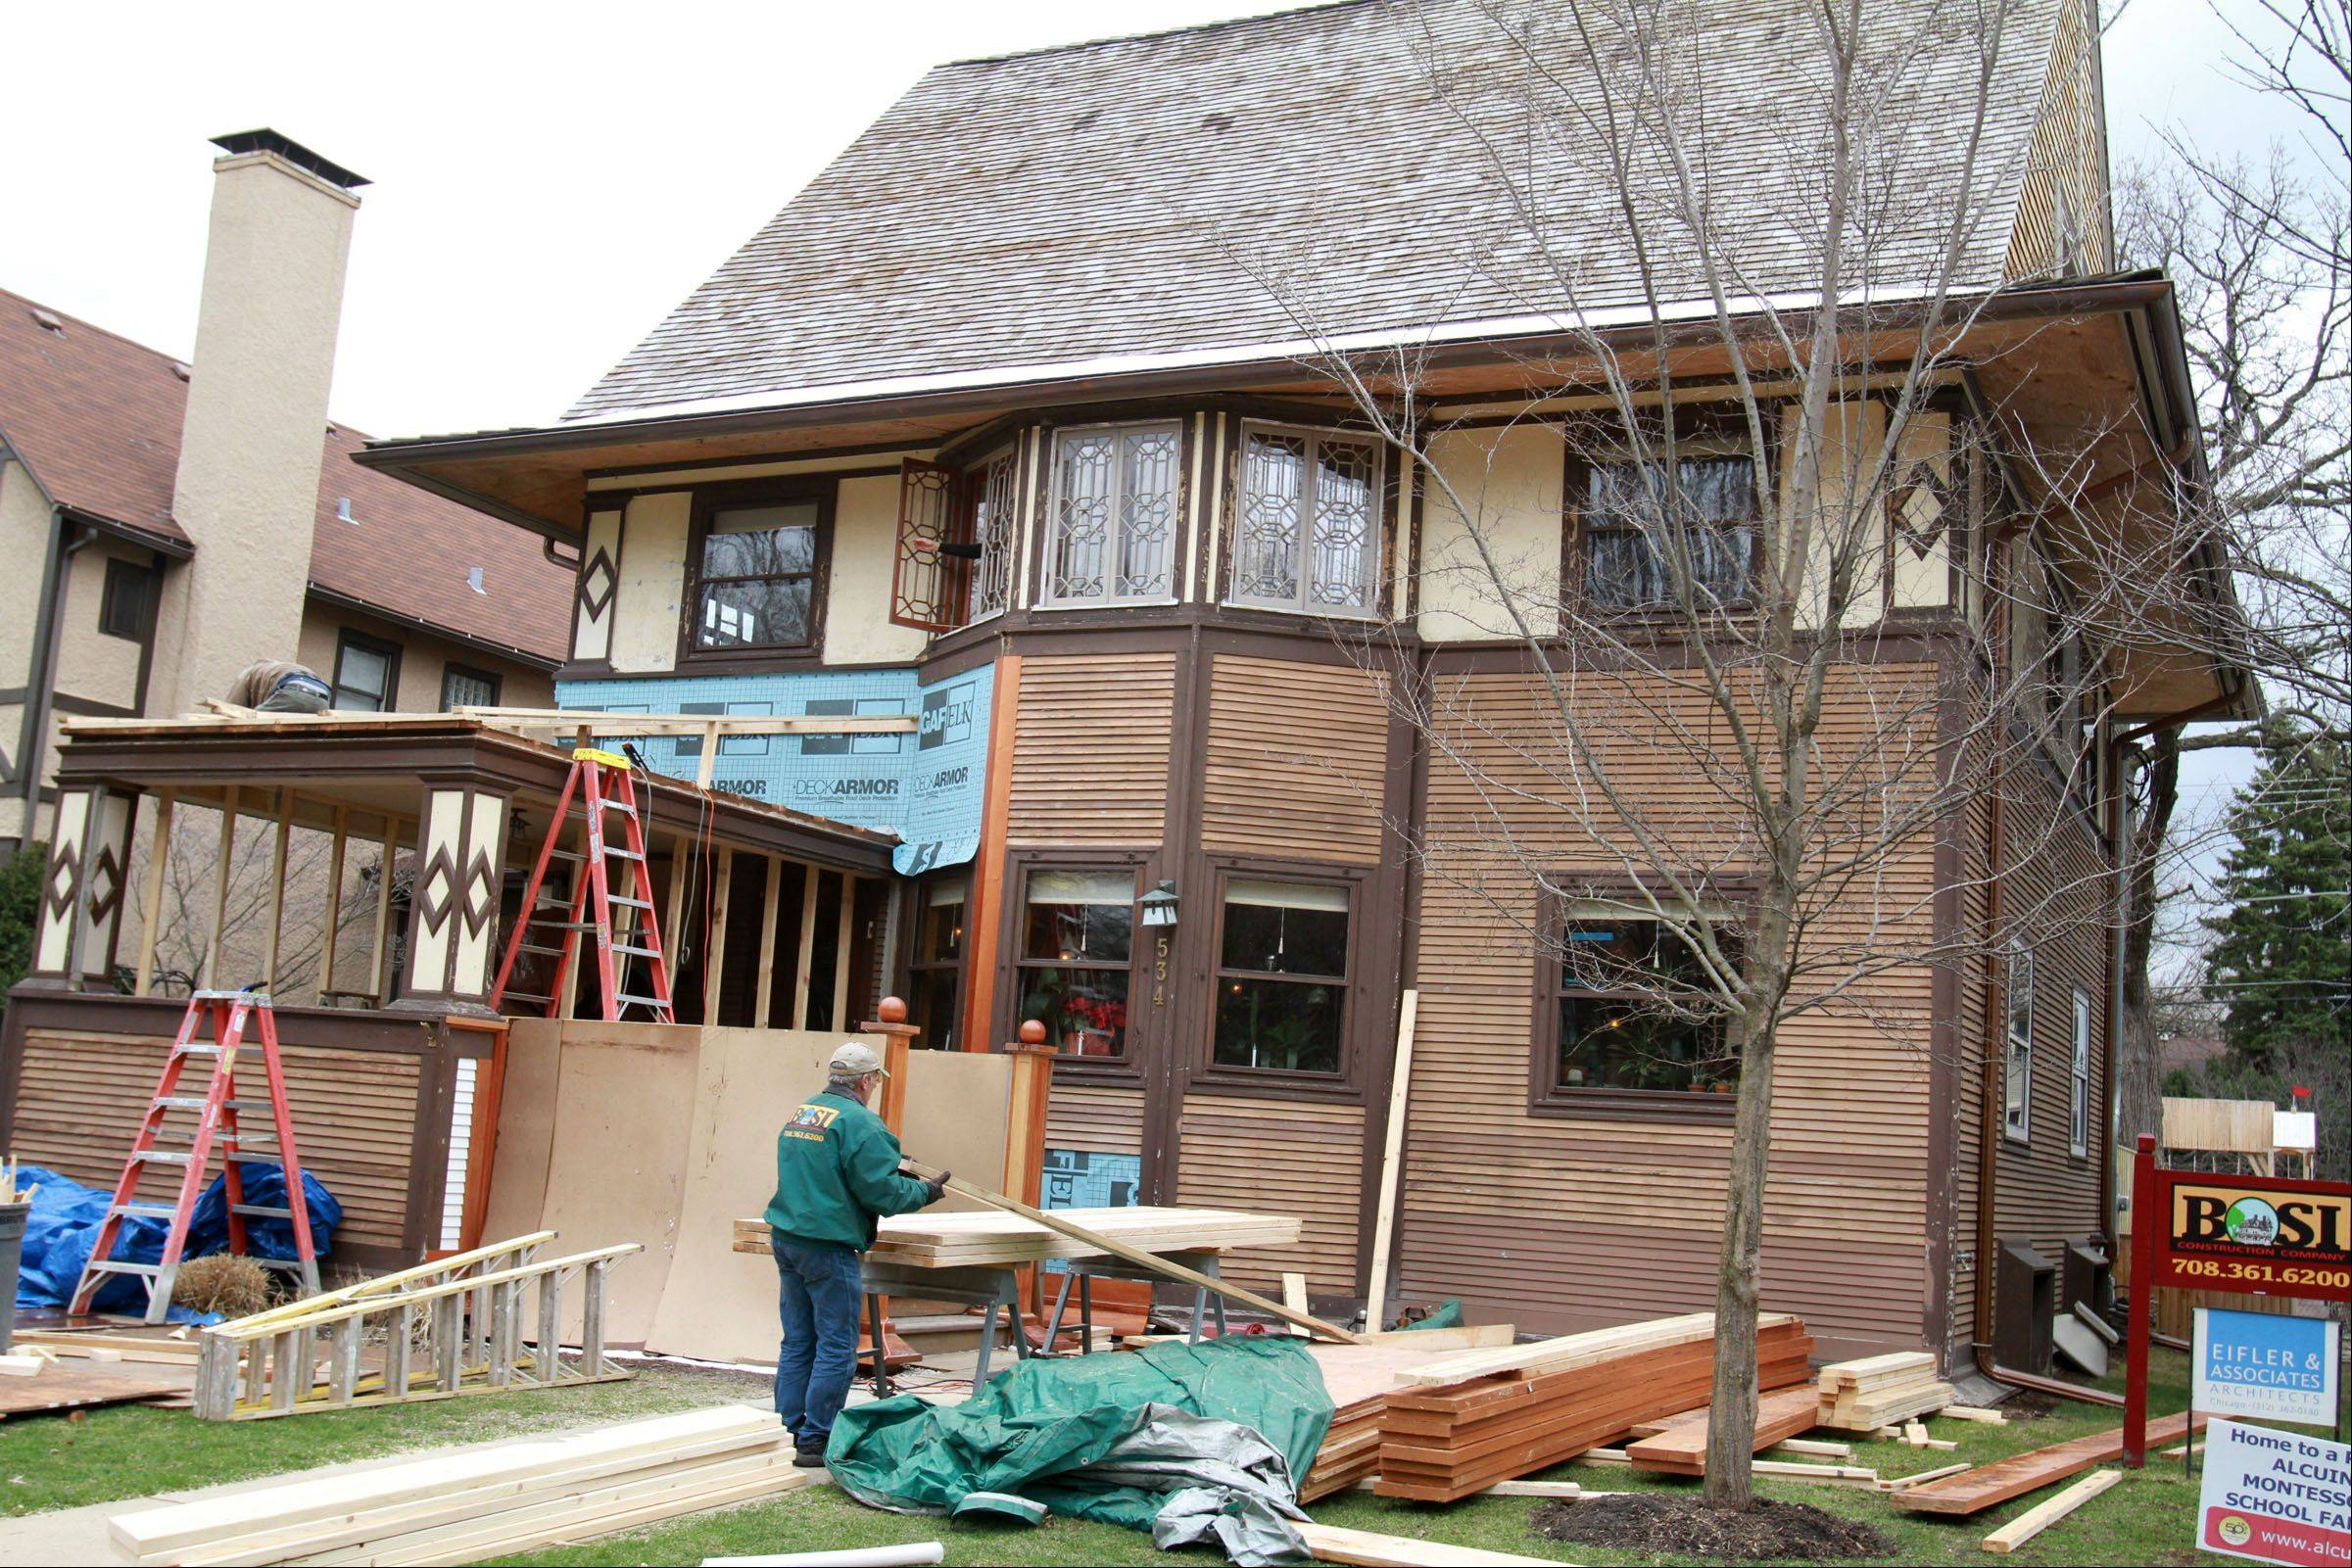 To prepare their home for this year's Wright Plus housewalk, Mark Donovan and Mary Ludgin are restoring the front porch, which was screened in at some point.